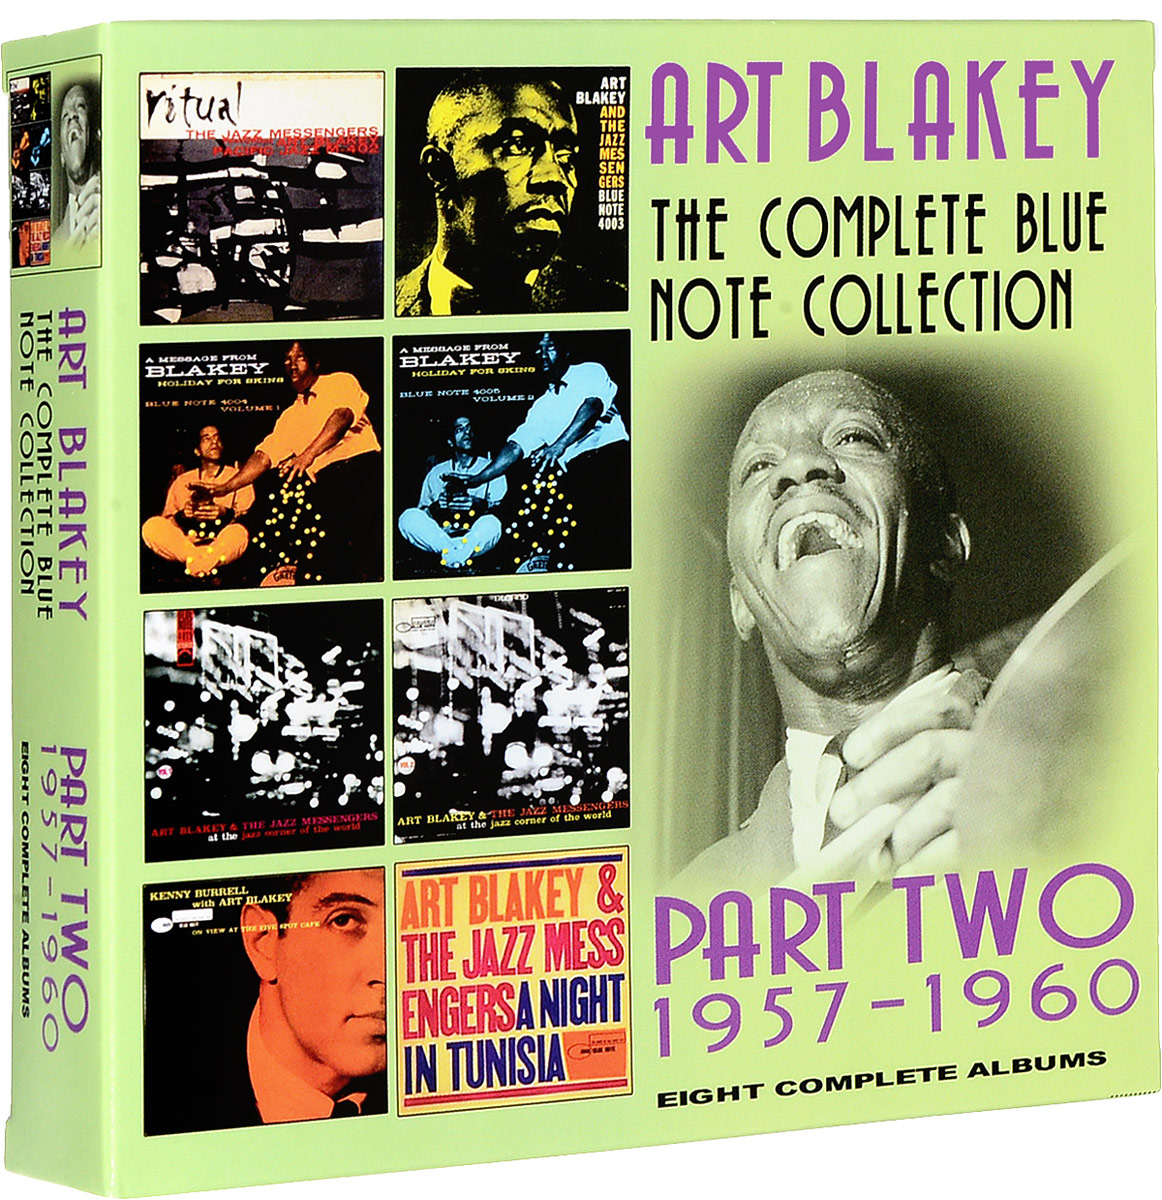 Арт Блэйки Art Blakey. The Complete Blue Note Collection 1957 - 1960 (4 CD)